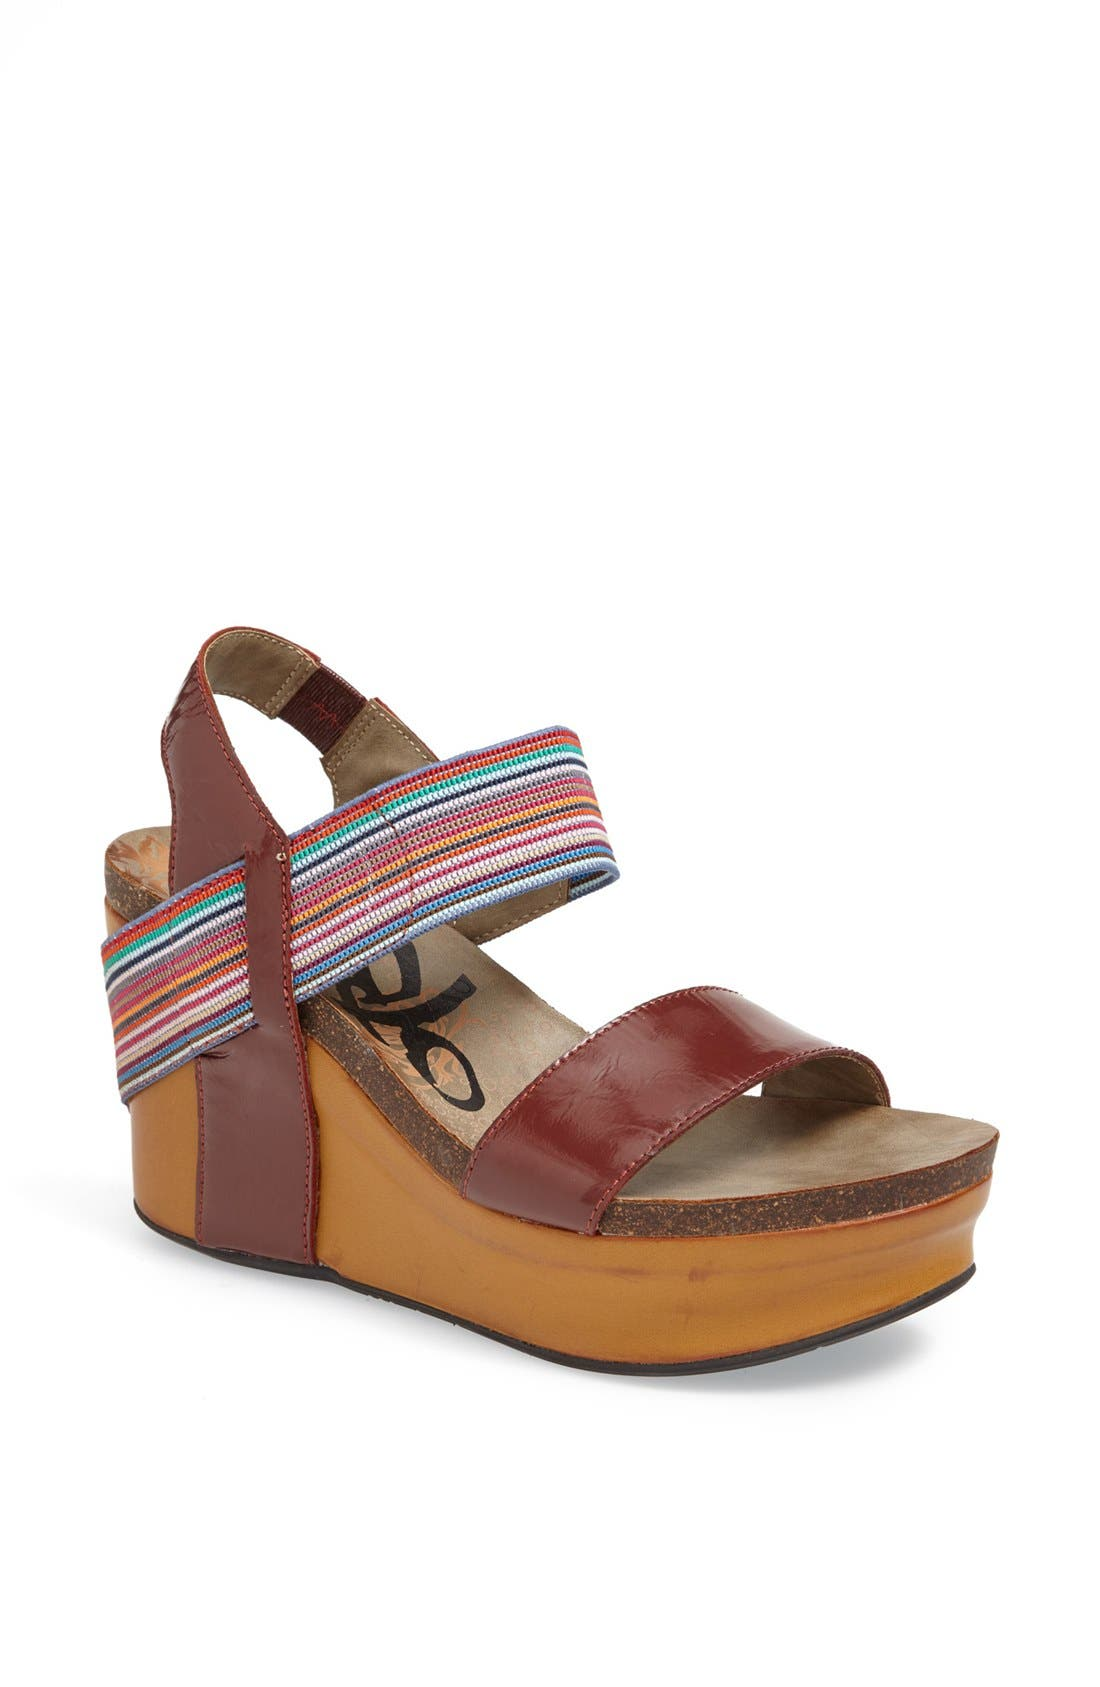 'Bushnell' Wedge Sandal,                             Main thumbnail 12, color,